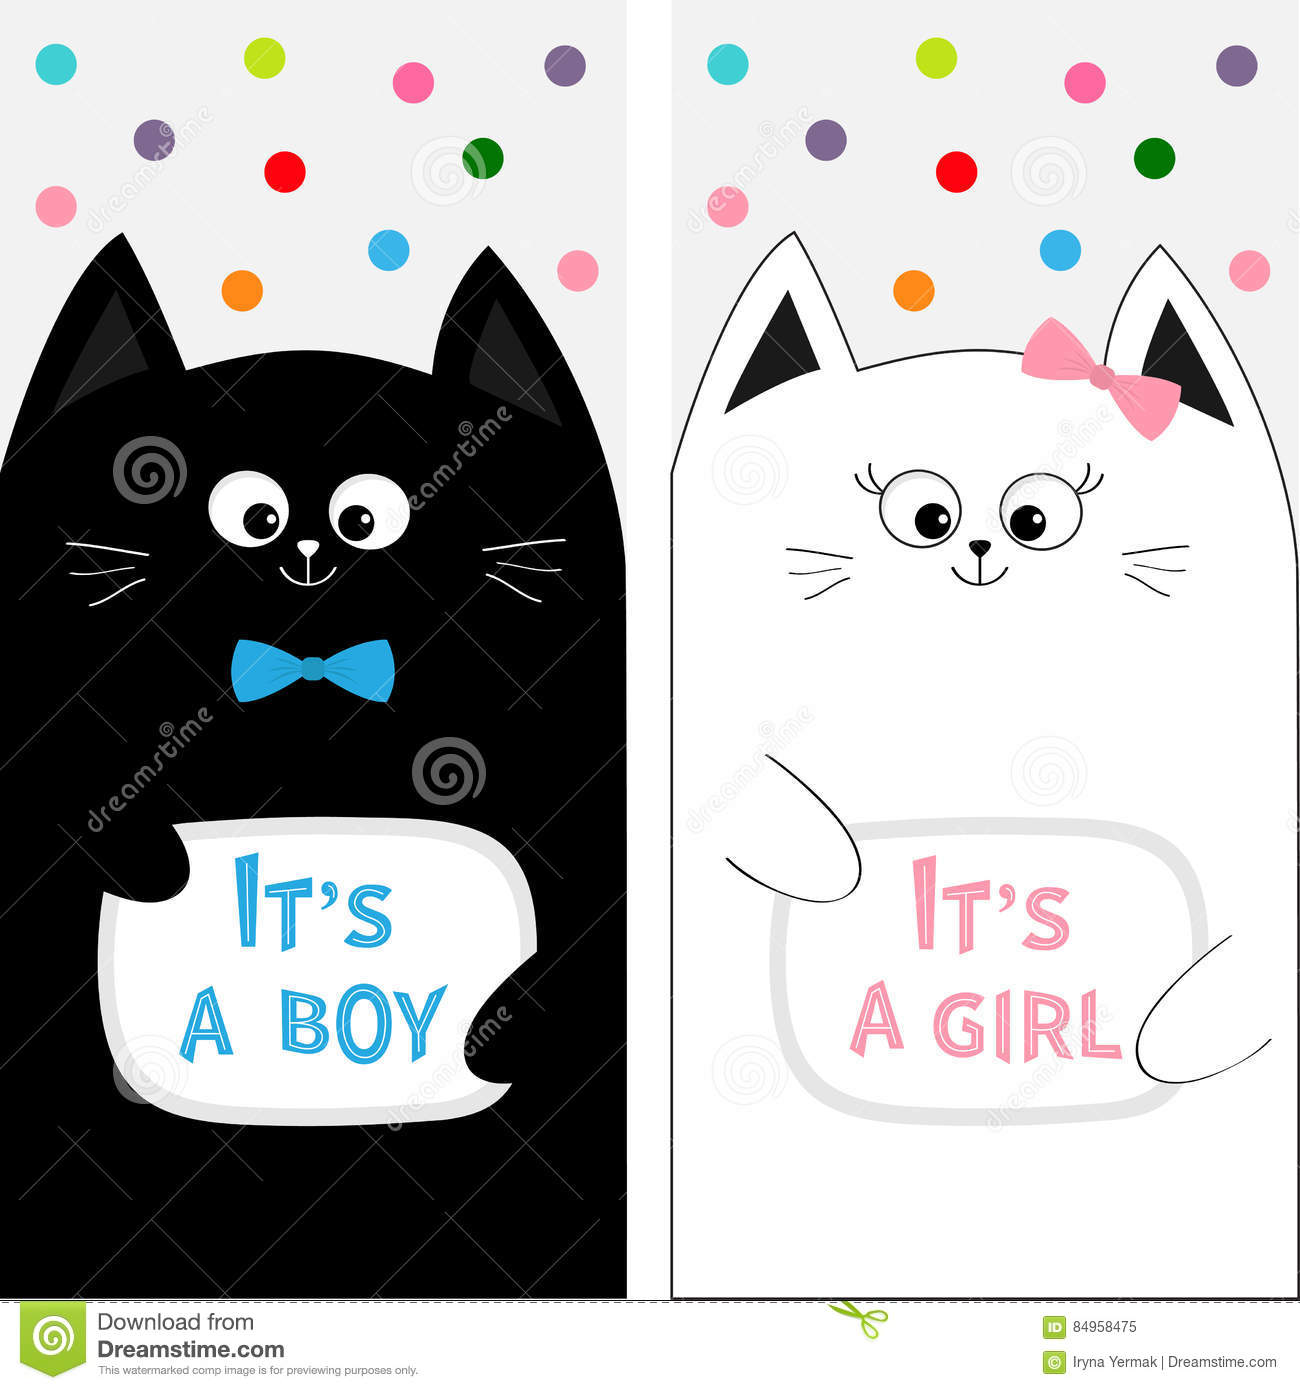 adbc1304c5a Cat family couple with bow. Flyer poster set. Cute funny cartoon character.  Its a boy girl. Baby shower greeting card. Flat design. White background.